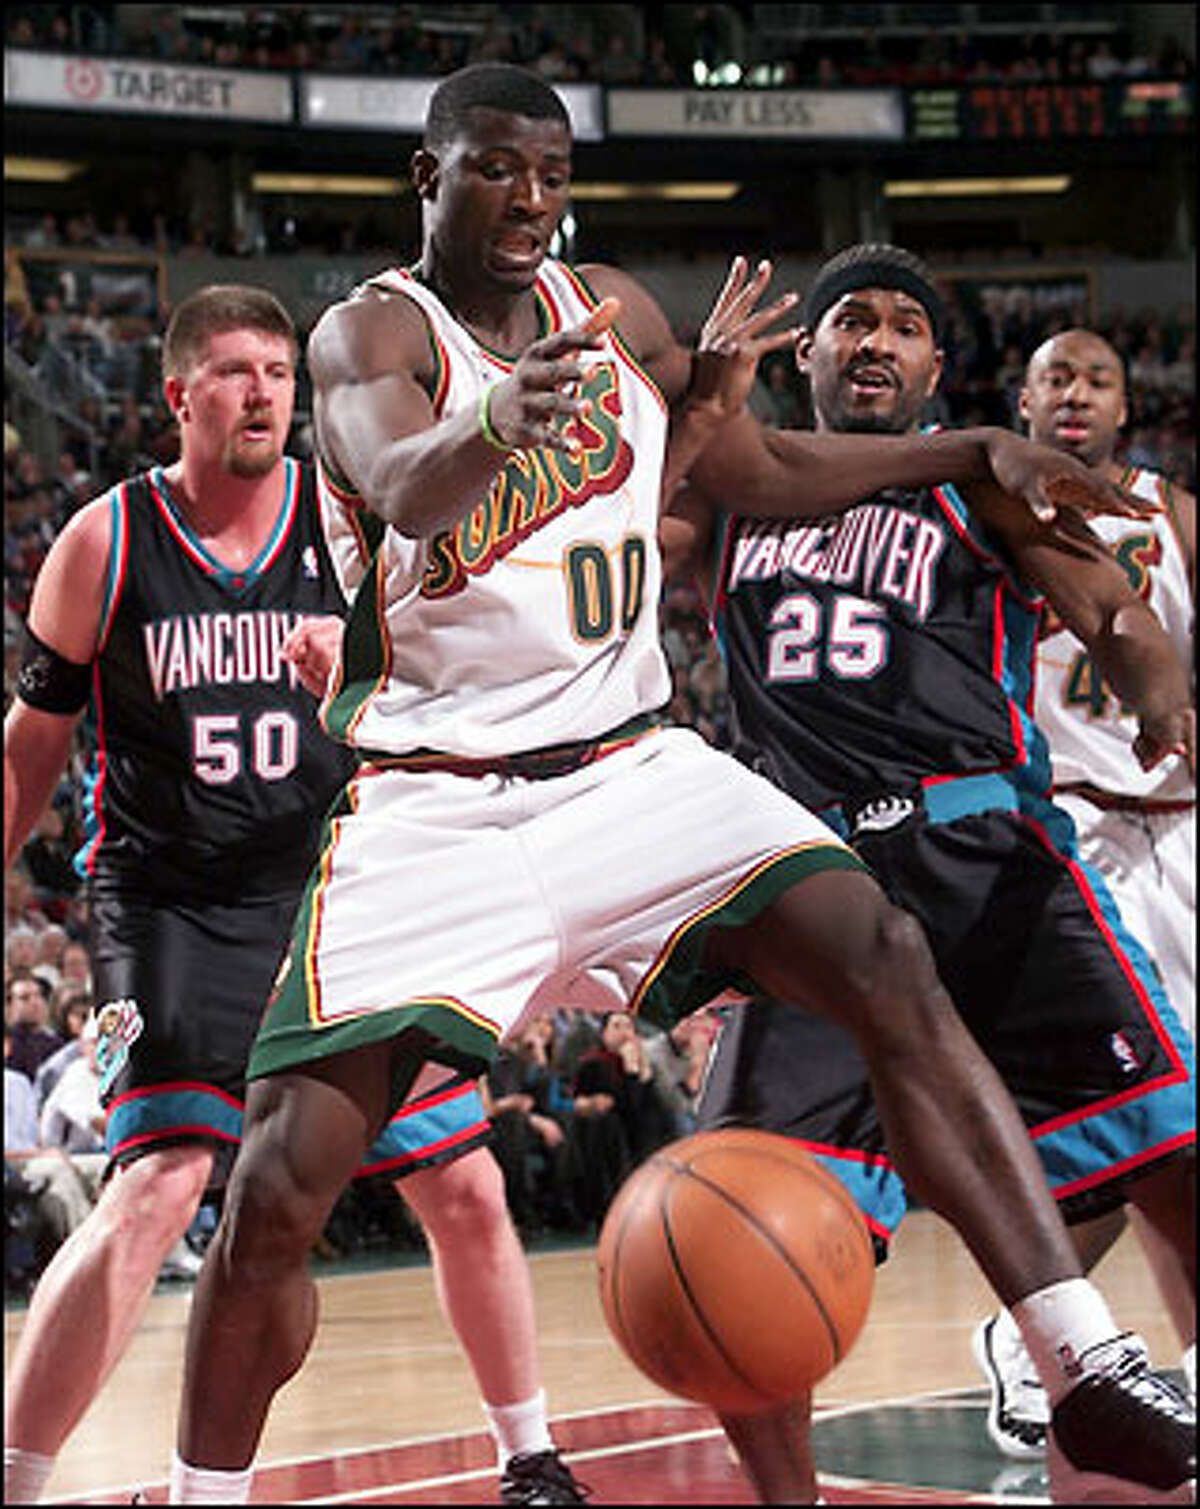 Sonics player Olumide Oyedeji battles for a loose ball between Grizzlies's Bryant Reeves (50) and Erick Strickland (25) in second quarter play at KeyArena Monday.